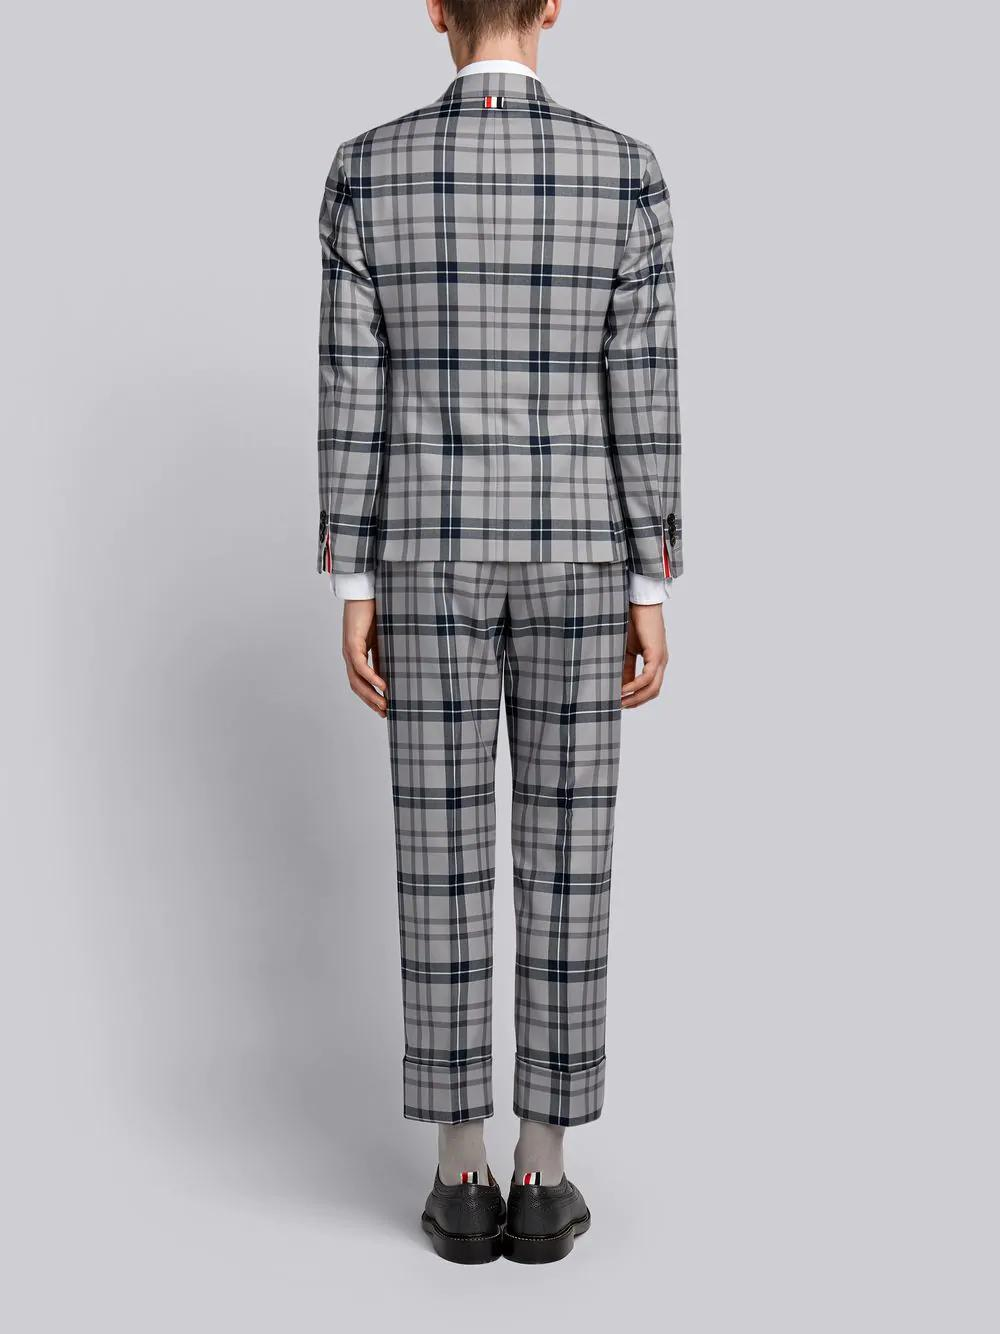 THOM BROWNE THOM BROWNE THOM BROWNE TARTAN SUIT WITH TIE,MSC001A0356012559476